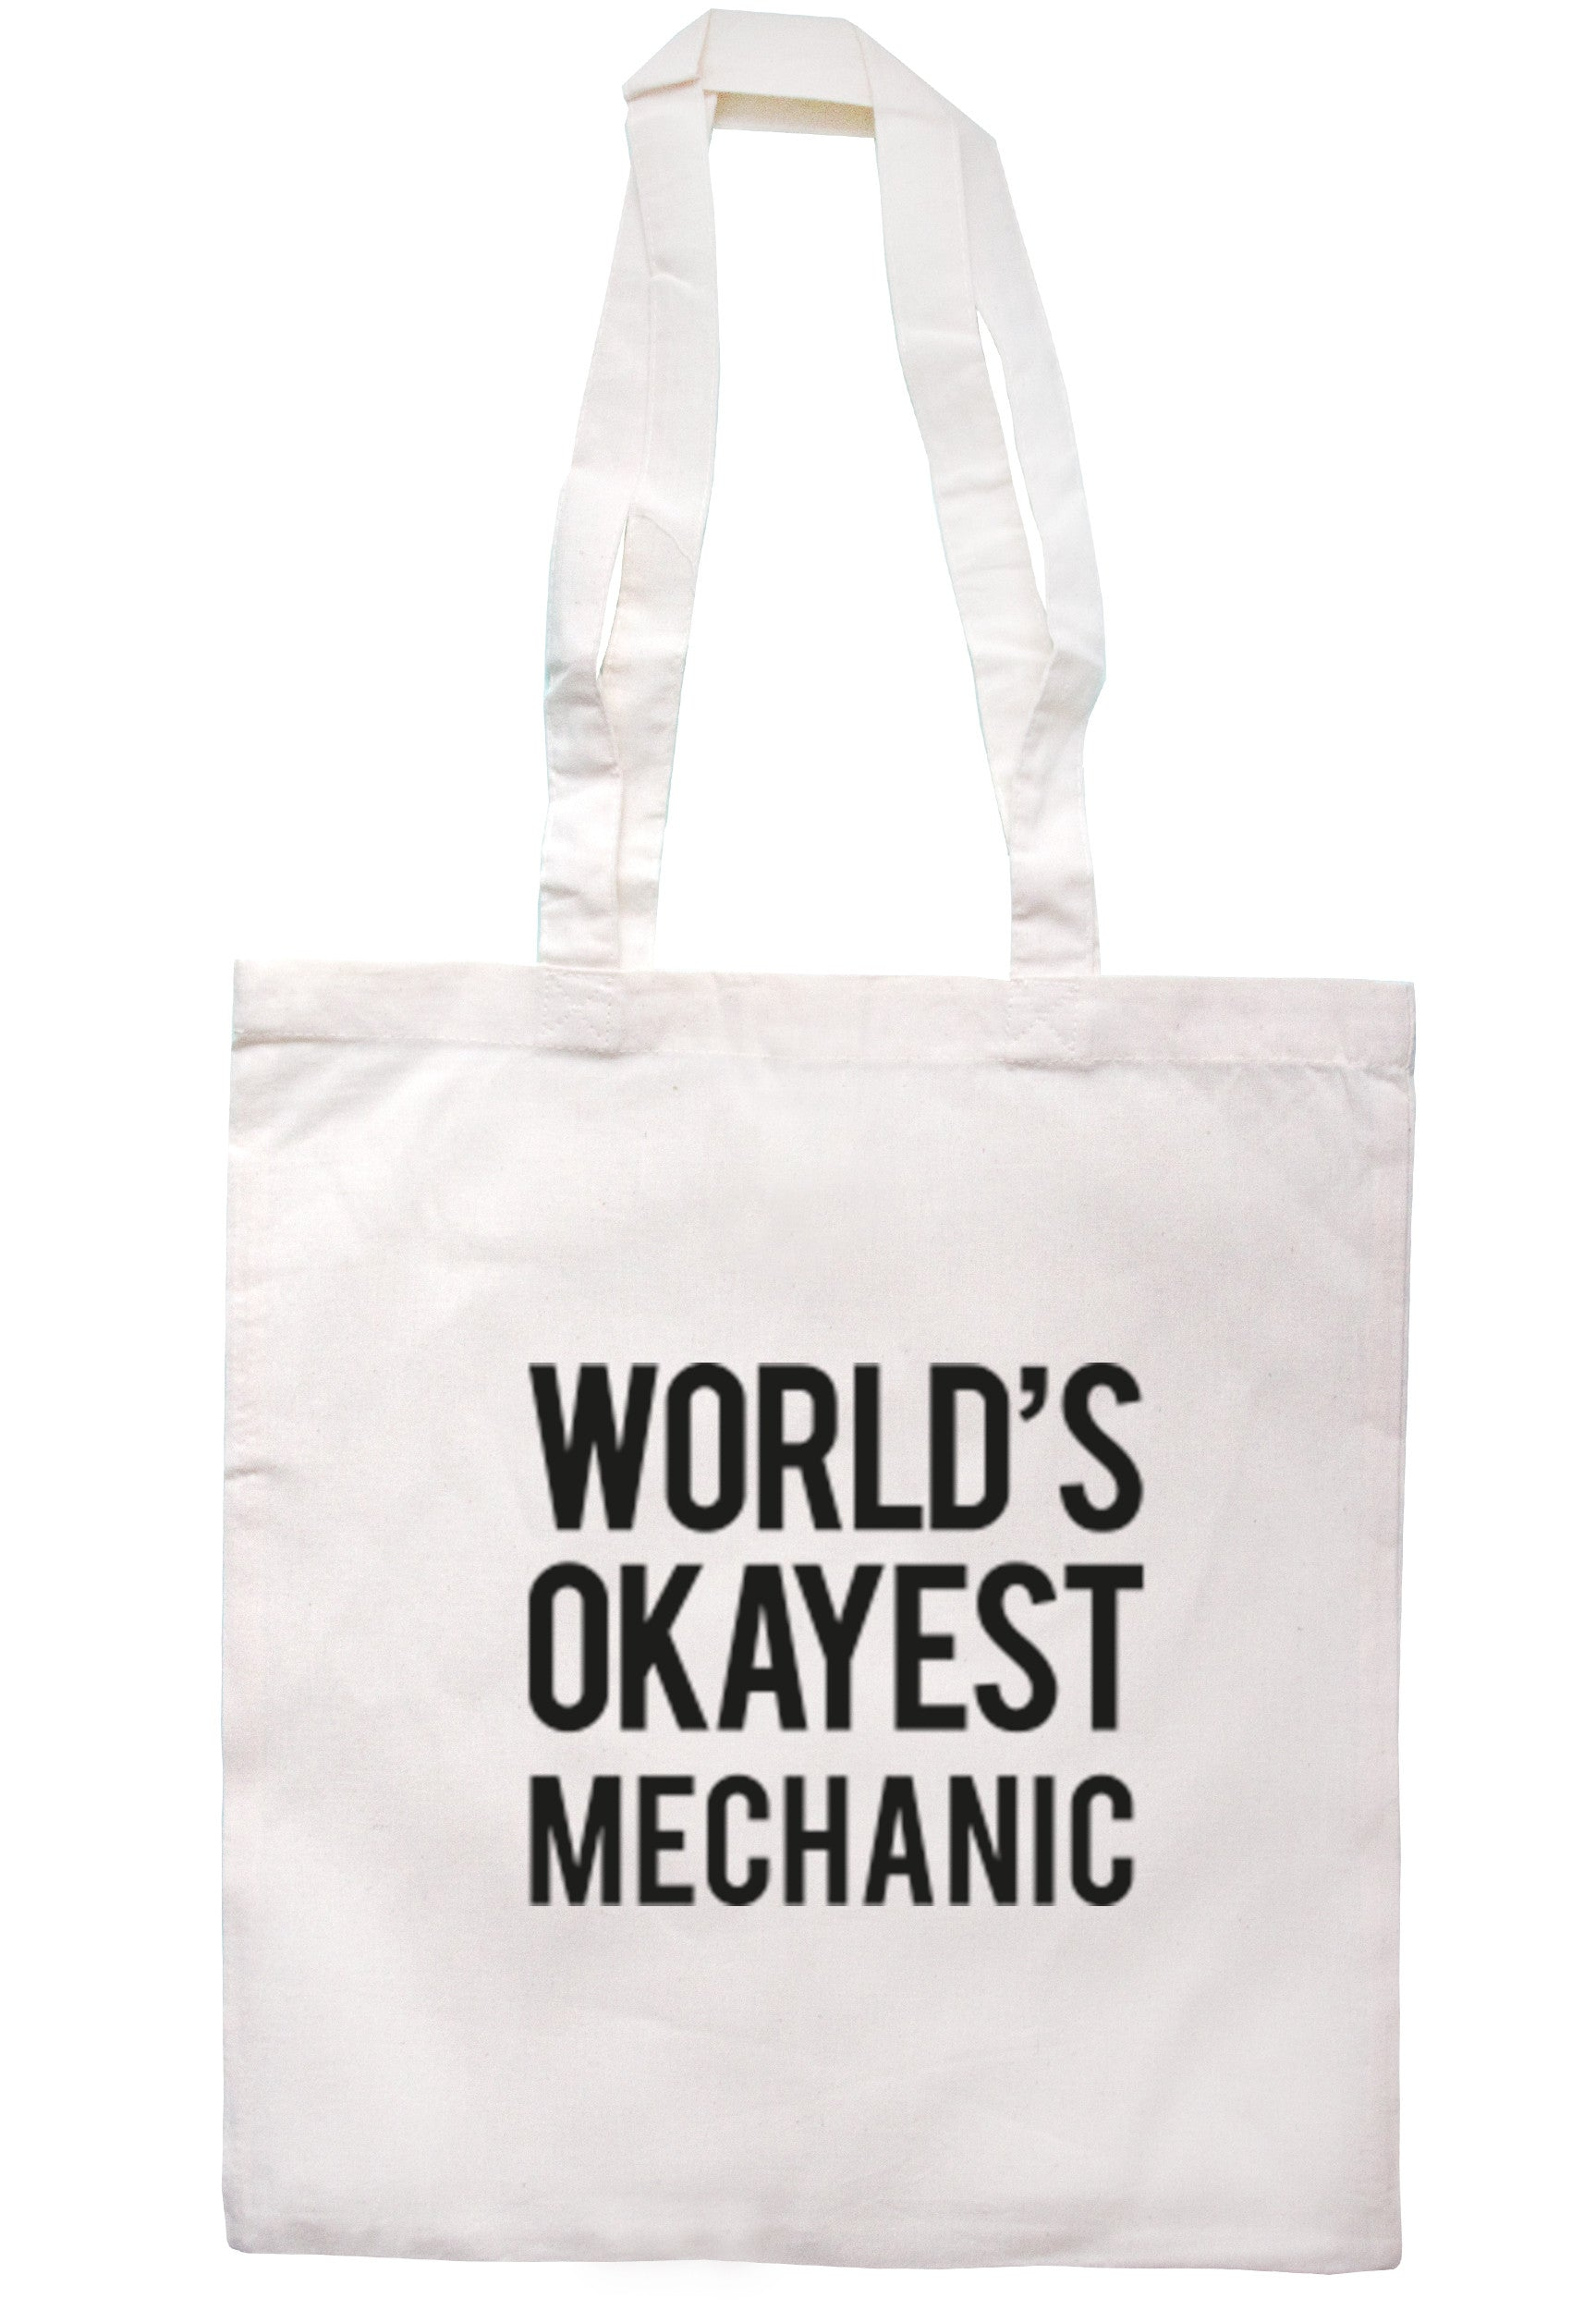 Worlds Okayest Mechanic Tote Bag TB0315 - Illustrated Identity Ltd.